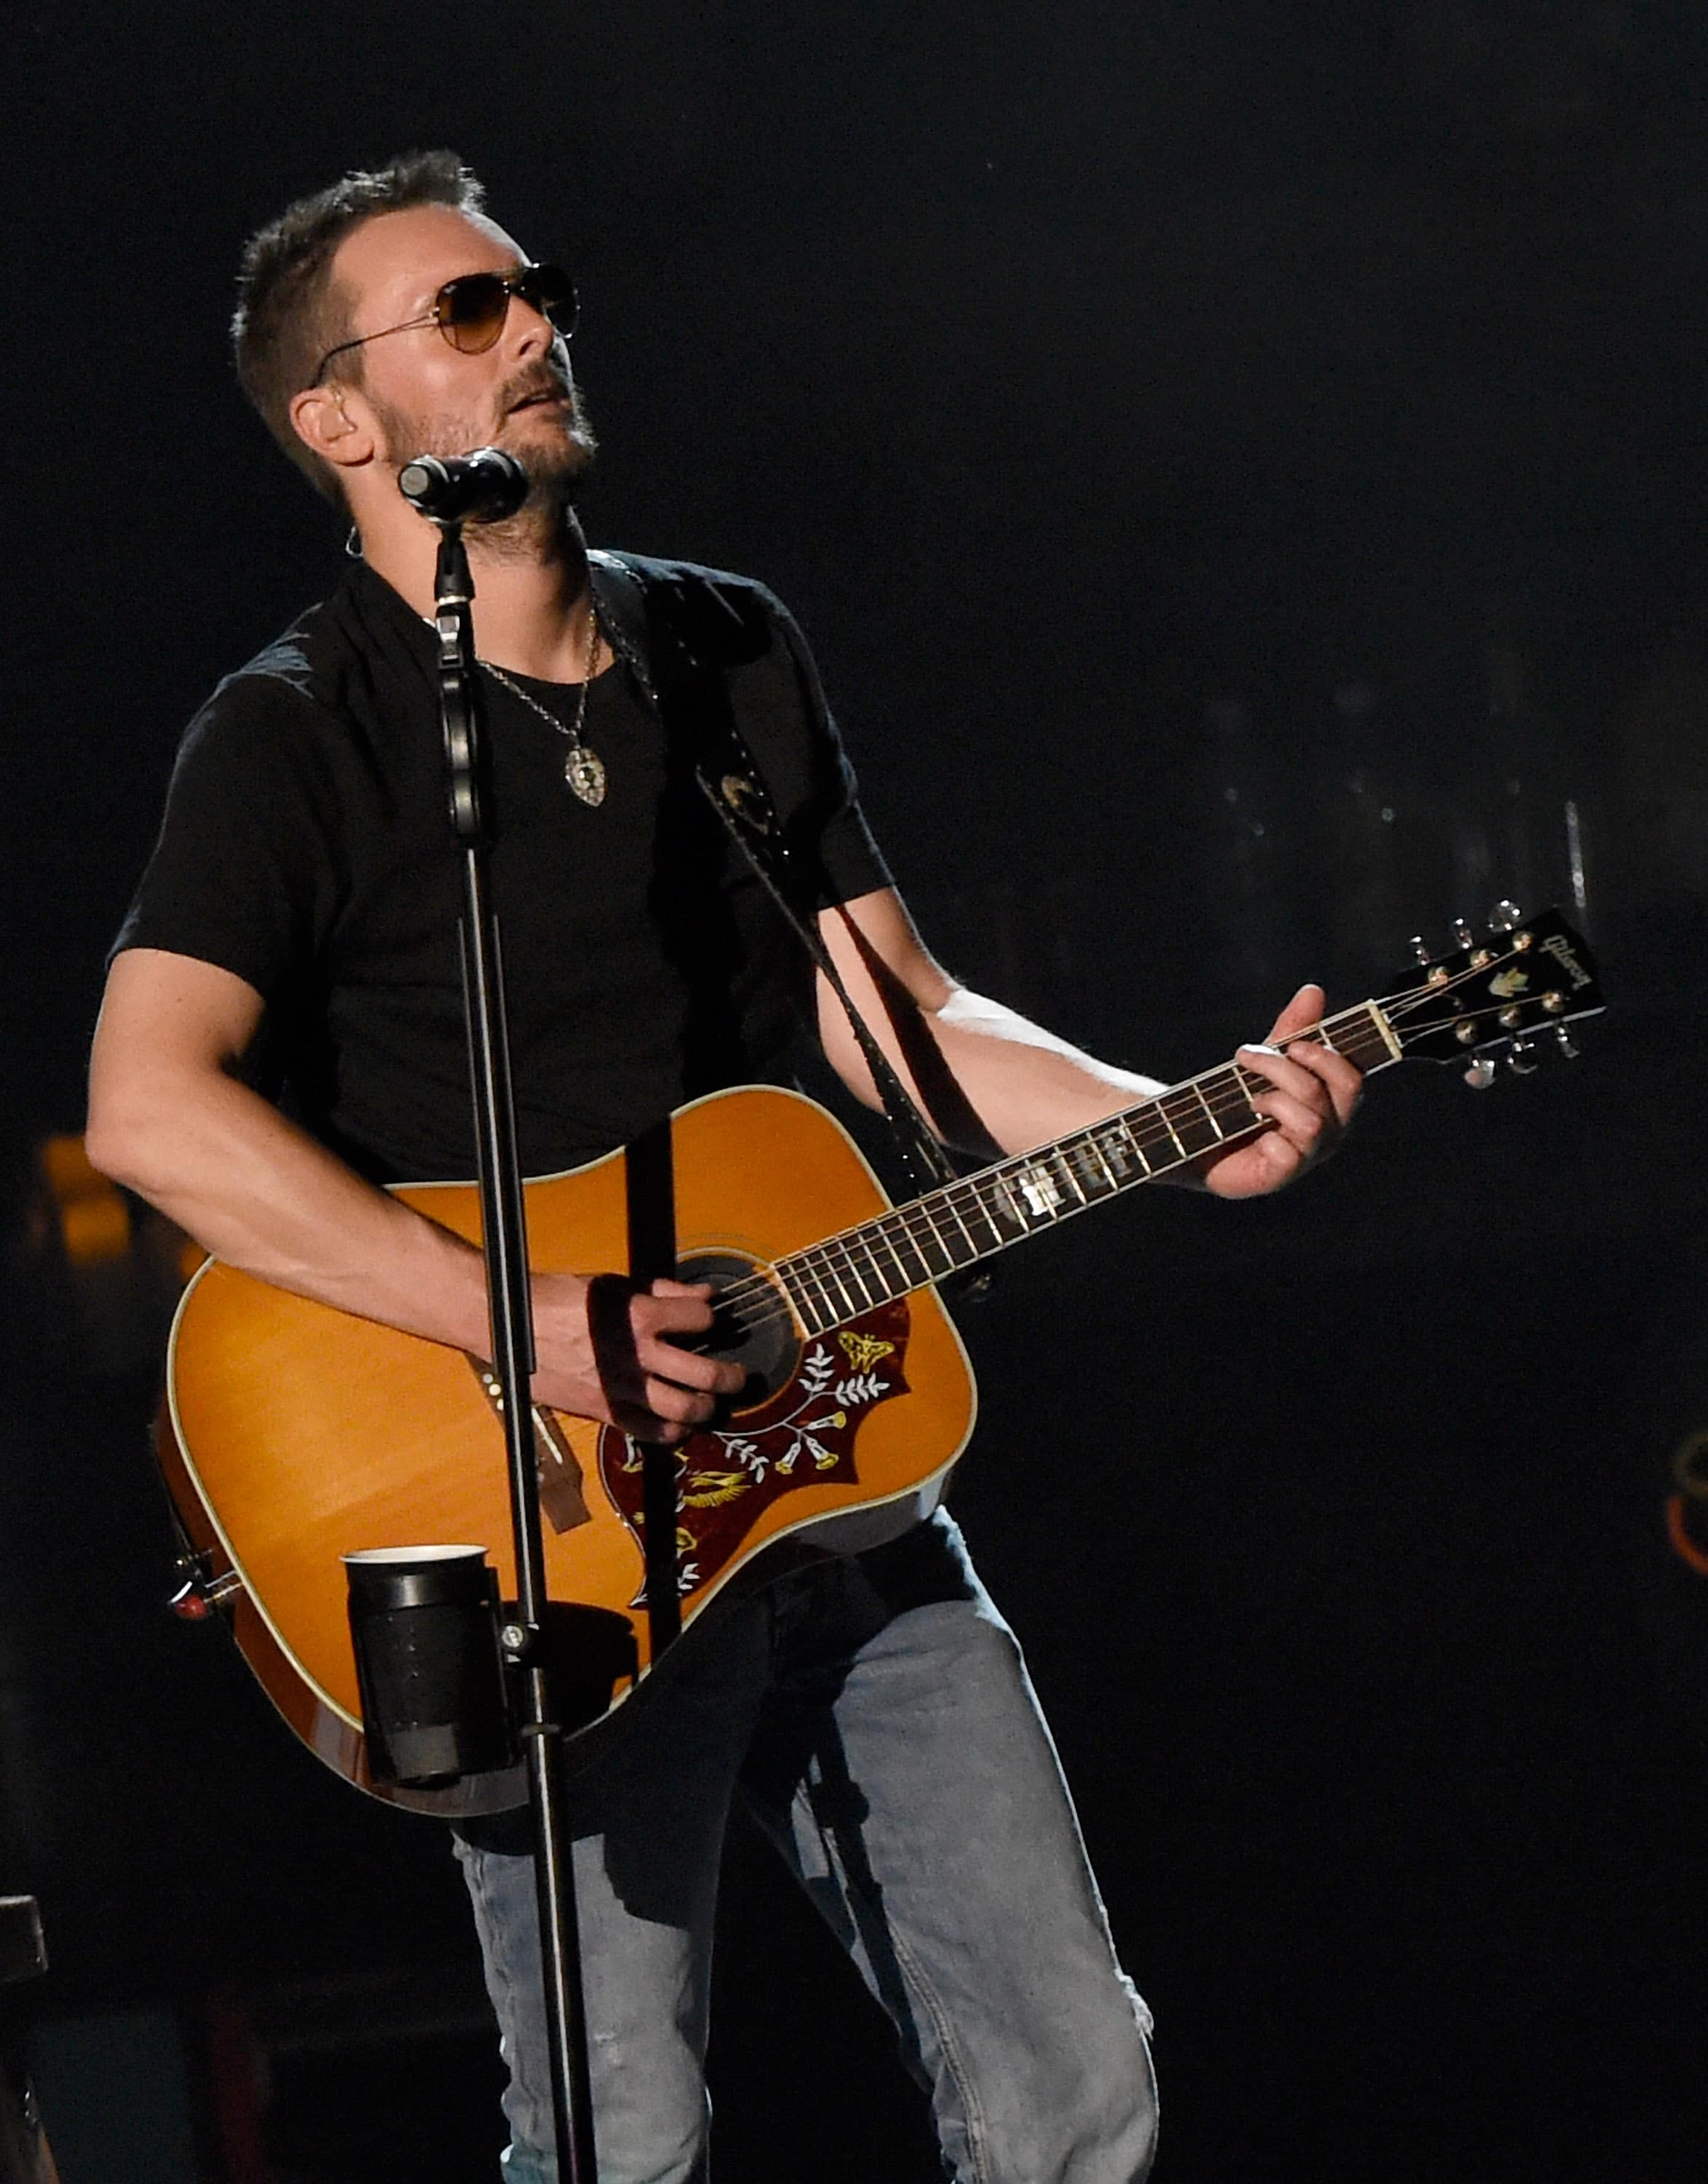 NASHVILLE, TN - JULY 30:  Singer/Songwriter Eric Church opens the new Ascend Amphitheater with the first of two sold out solo shows on July 30, 2015 in Nashville, Tennessee.  (Photo by Rick Diamond/Getty Images)